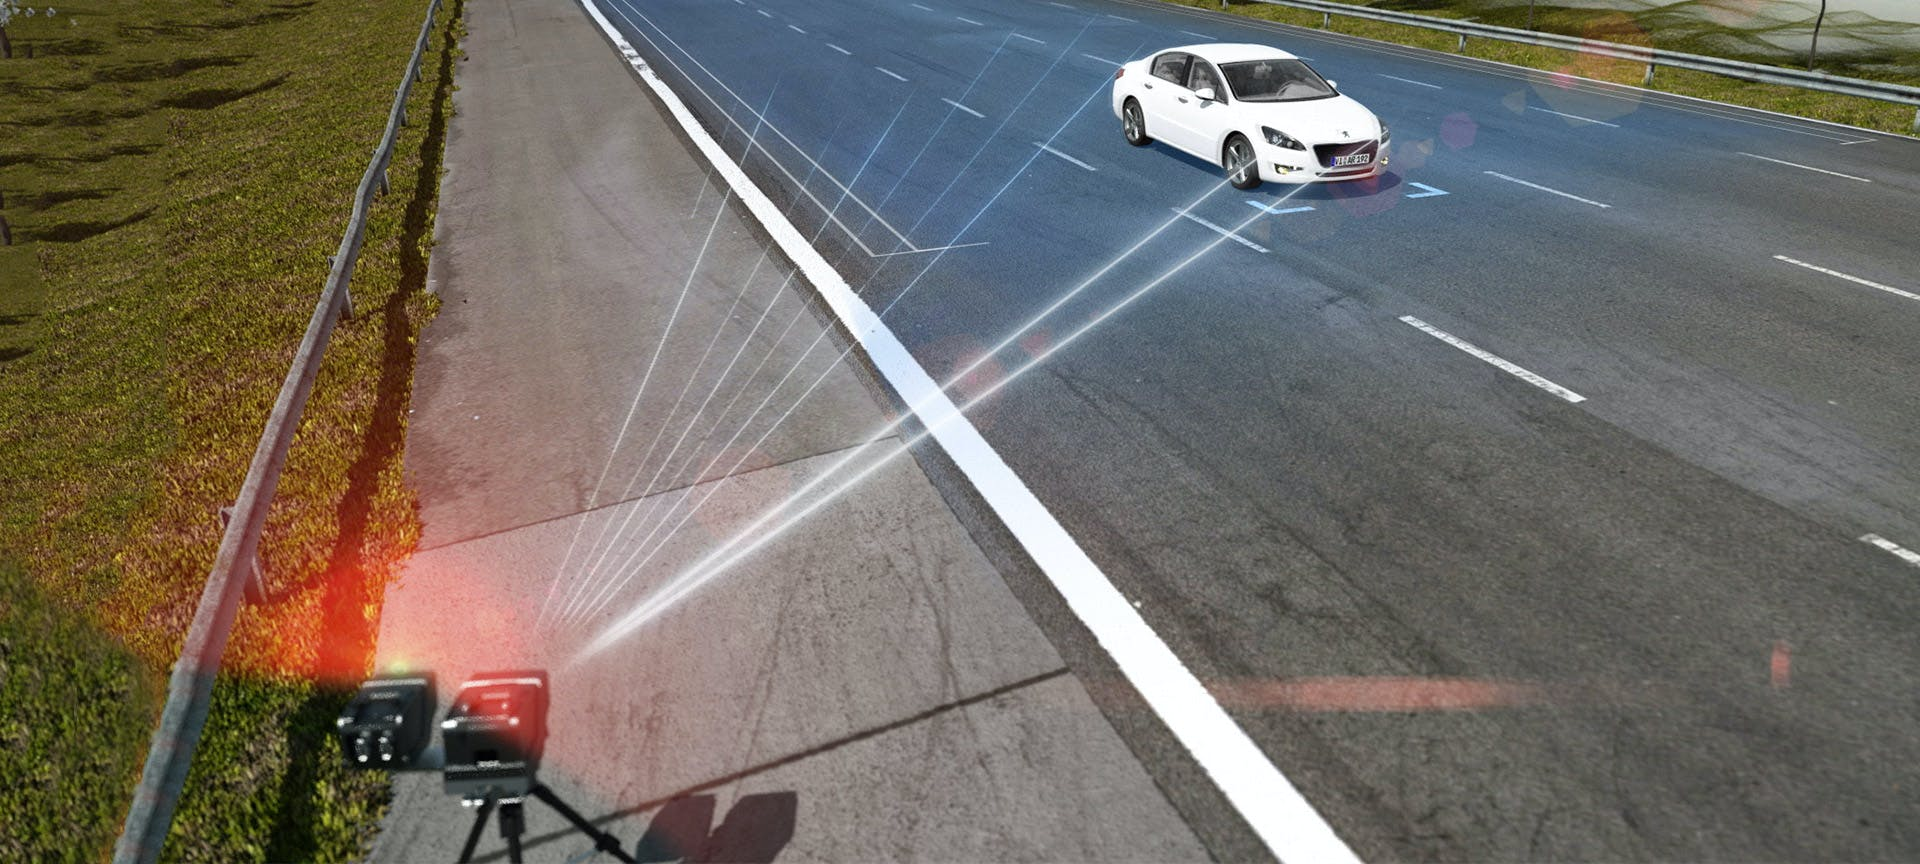 Precise speed enforcement with LIDAR measuring technology